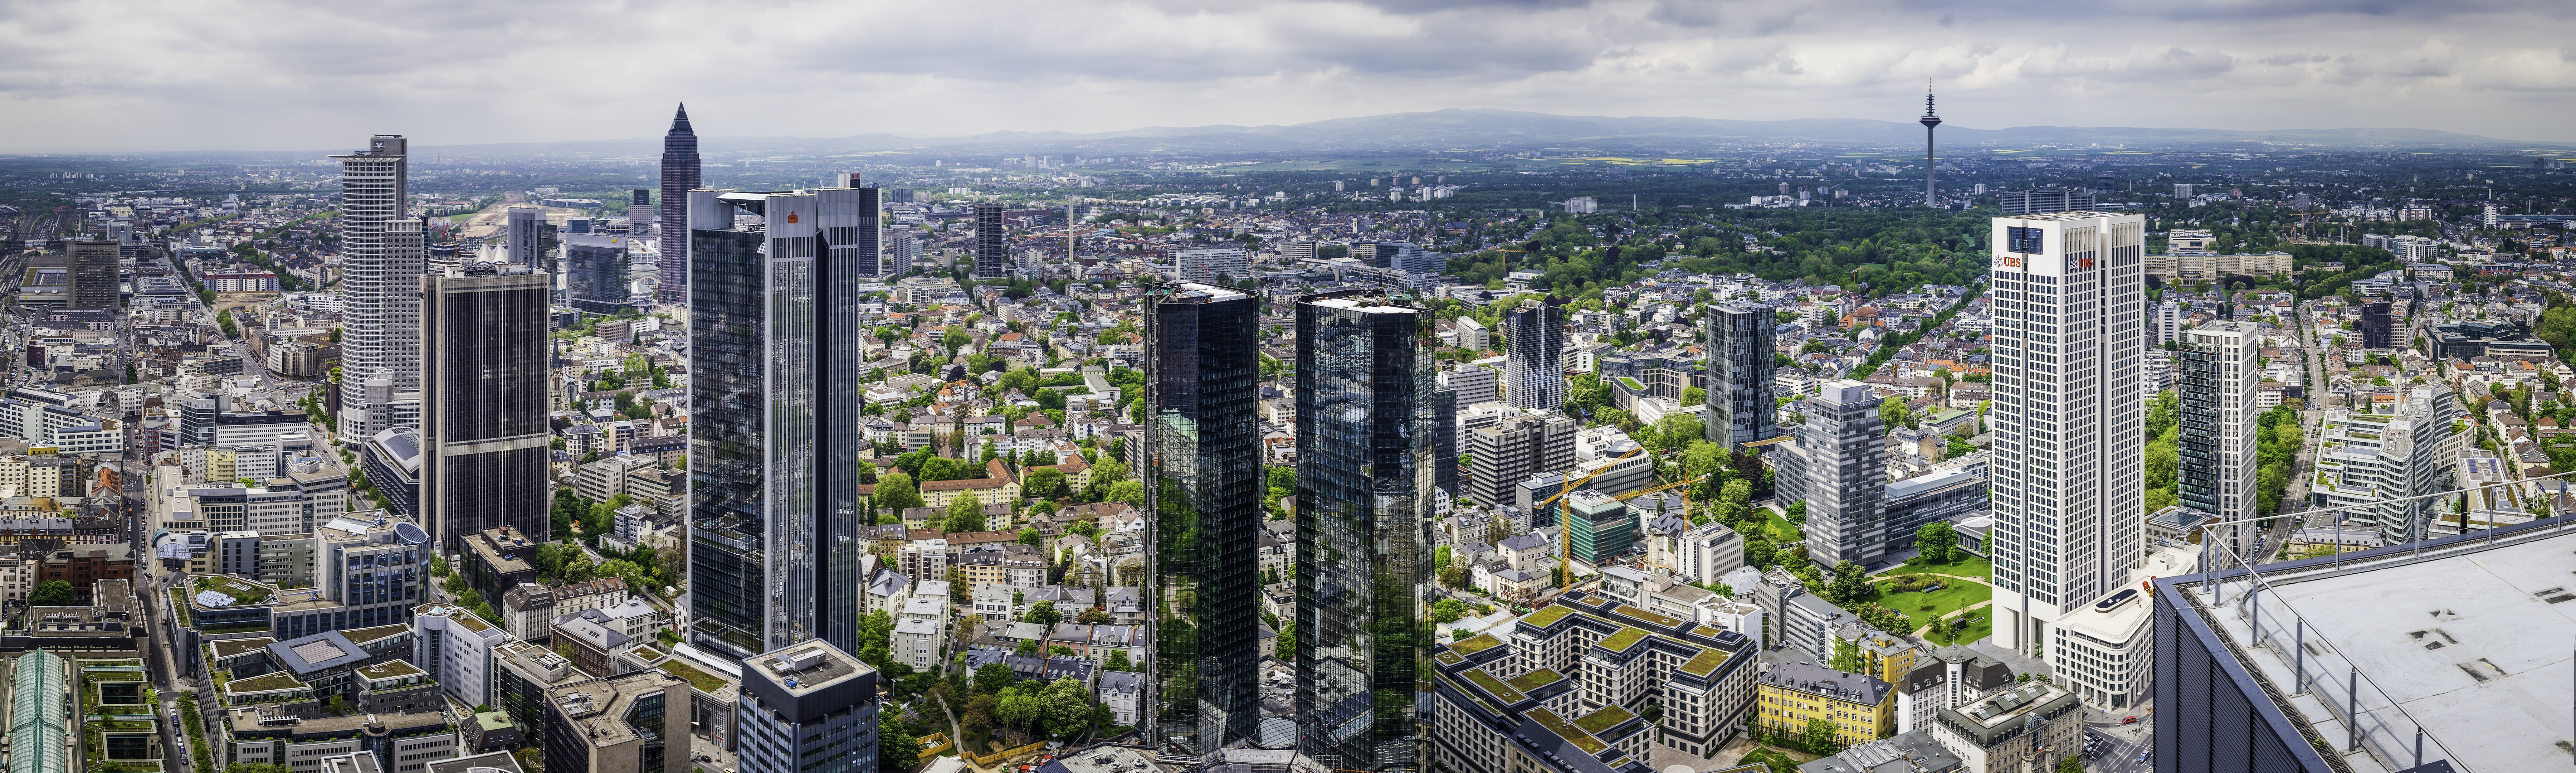 Financial district in Frankfurt, Germany. Photo/Credit: fotoVoyager/iStock.com